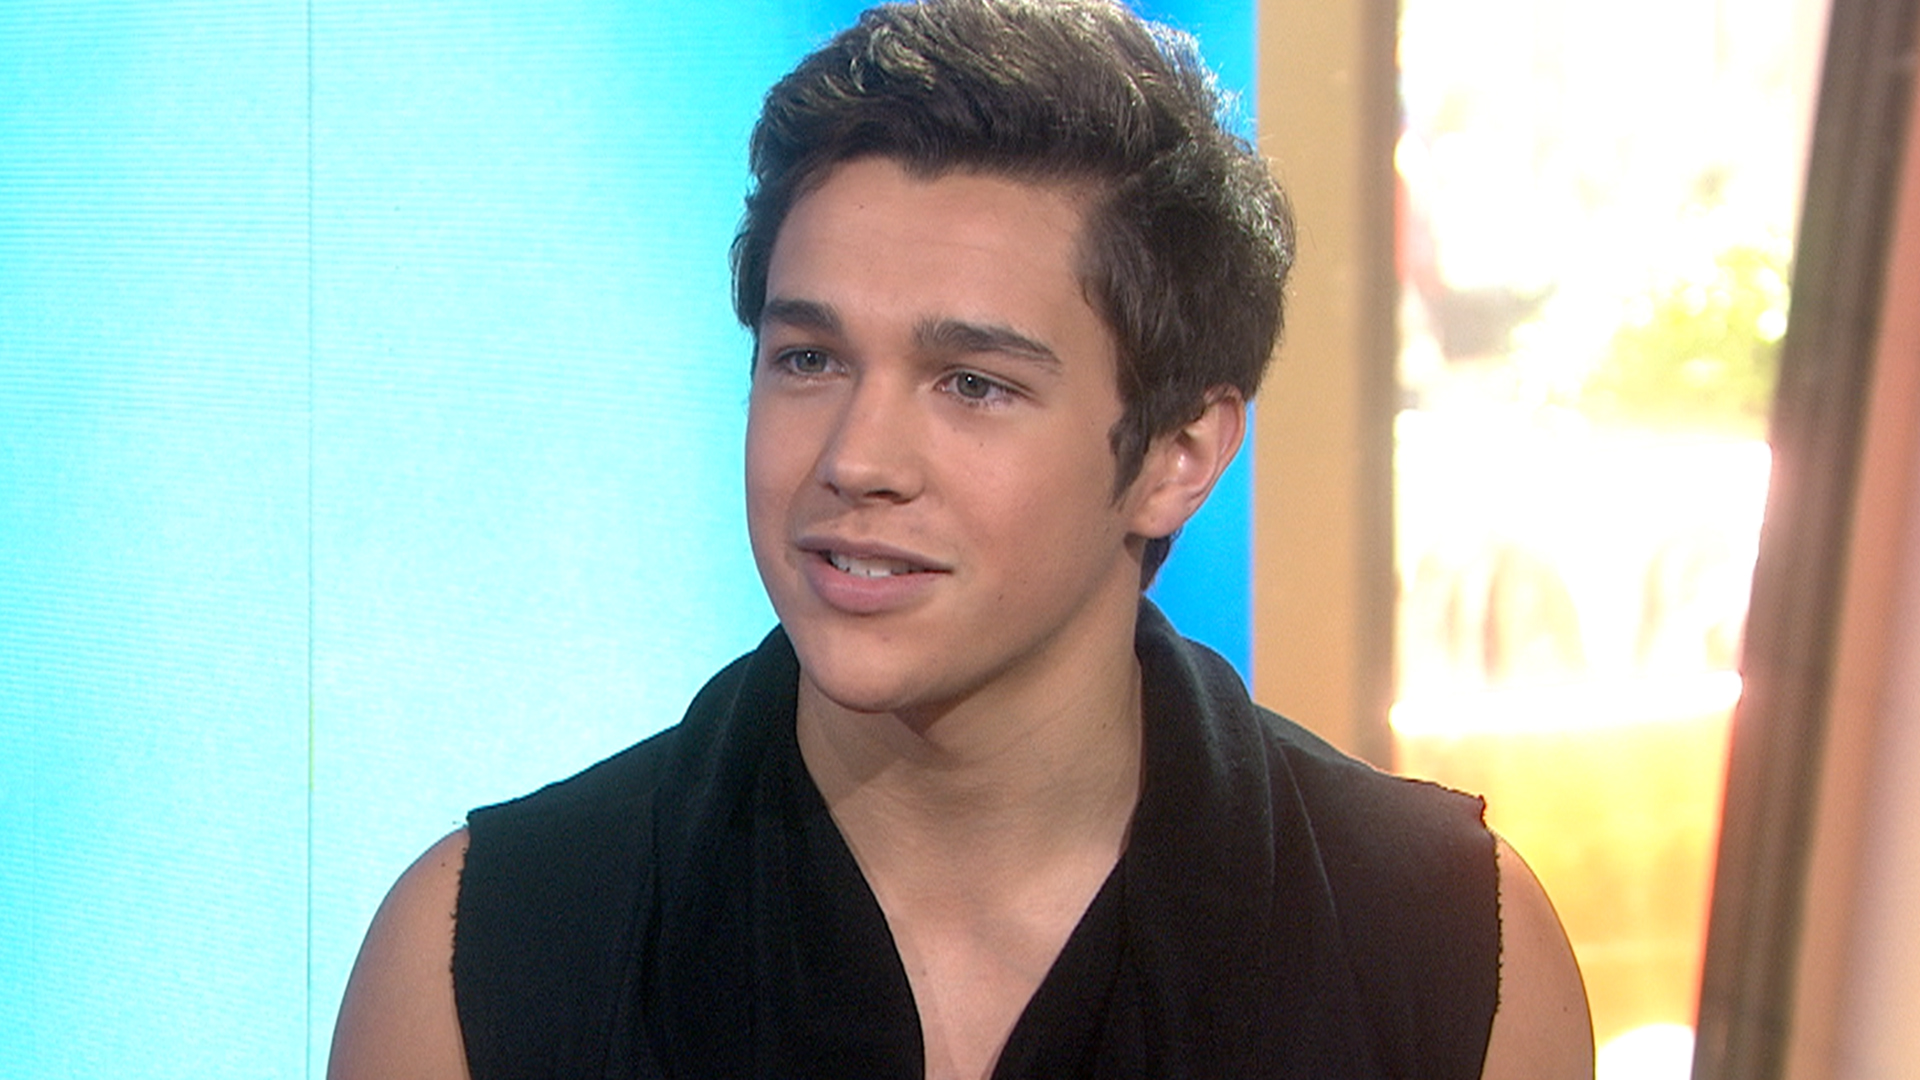 Austin Mahone Shows KLG And Hoda His Abs